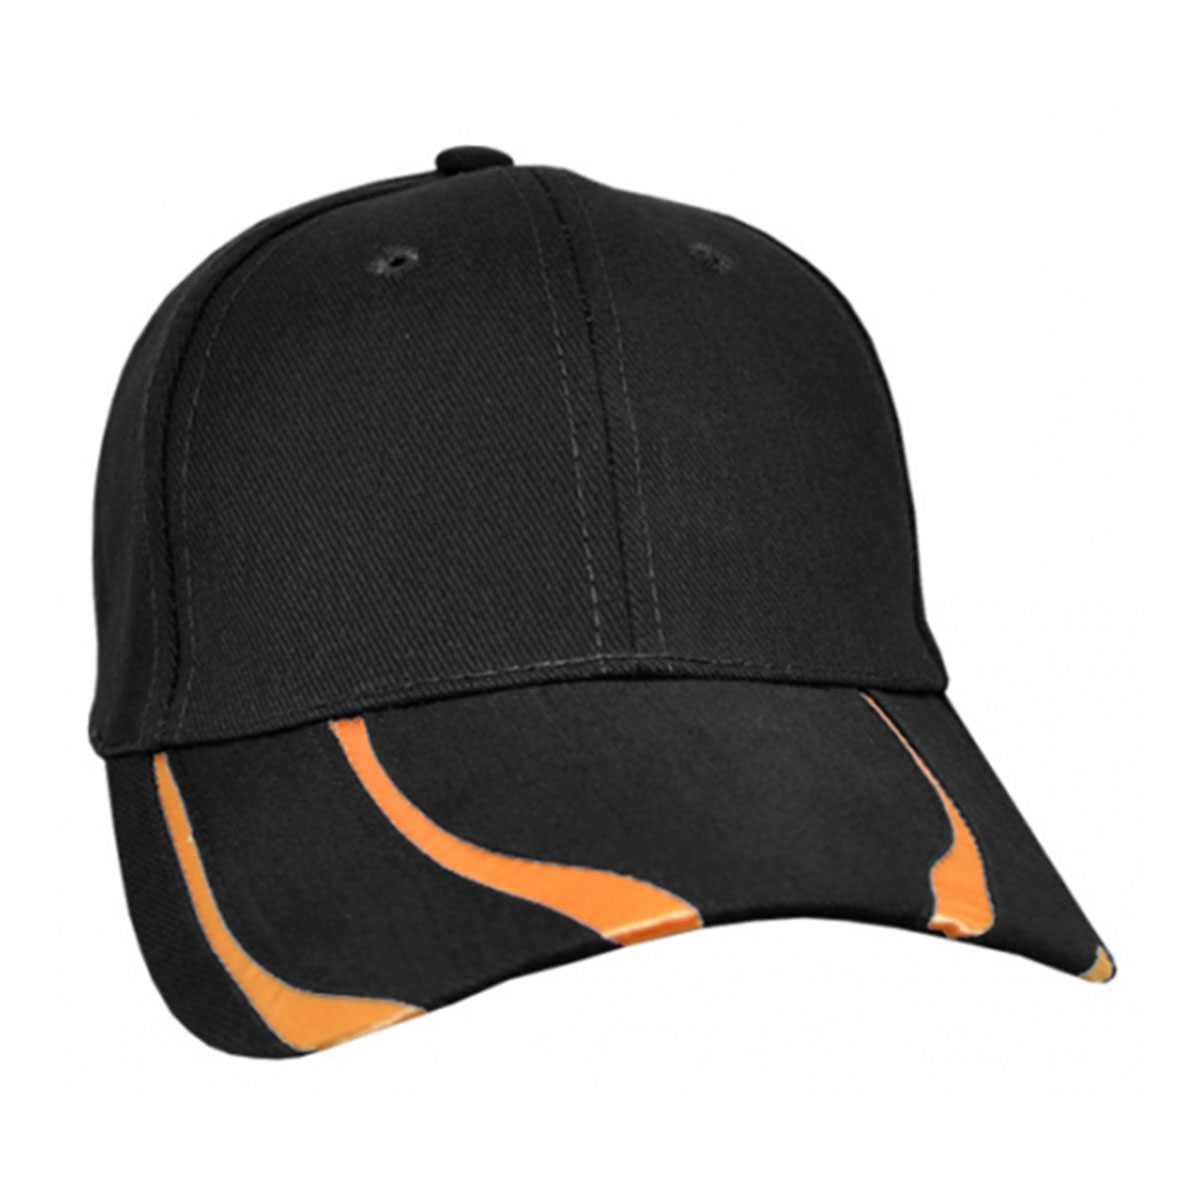 Striker Cap-Black / Orange